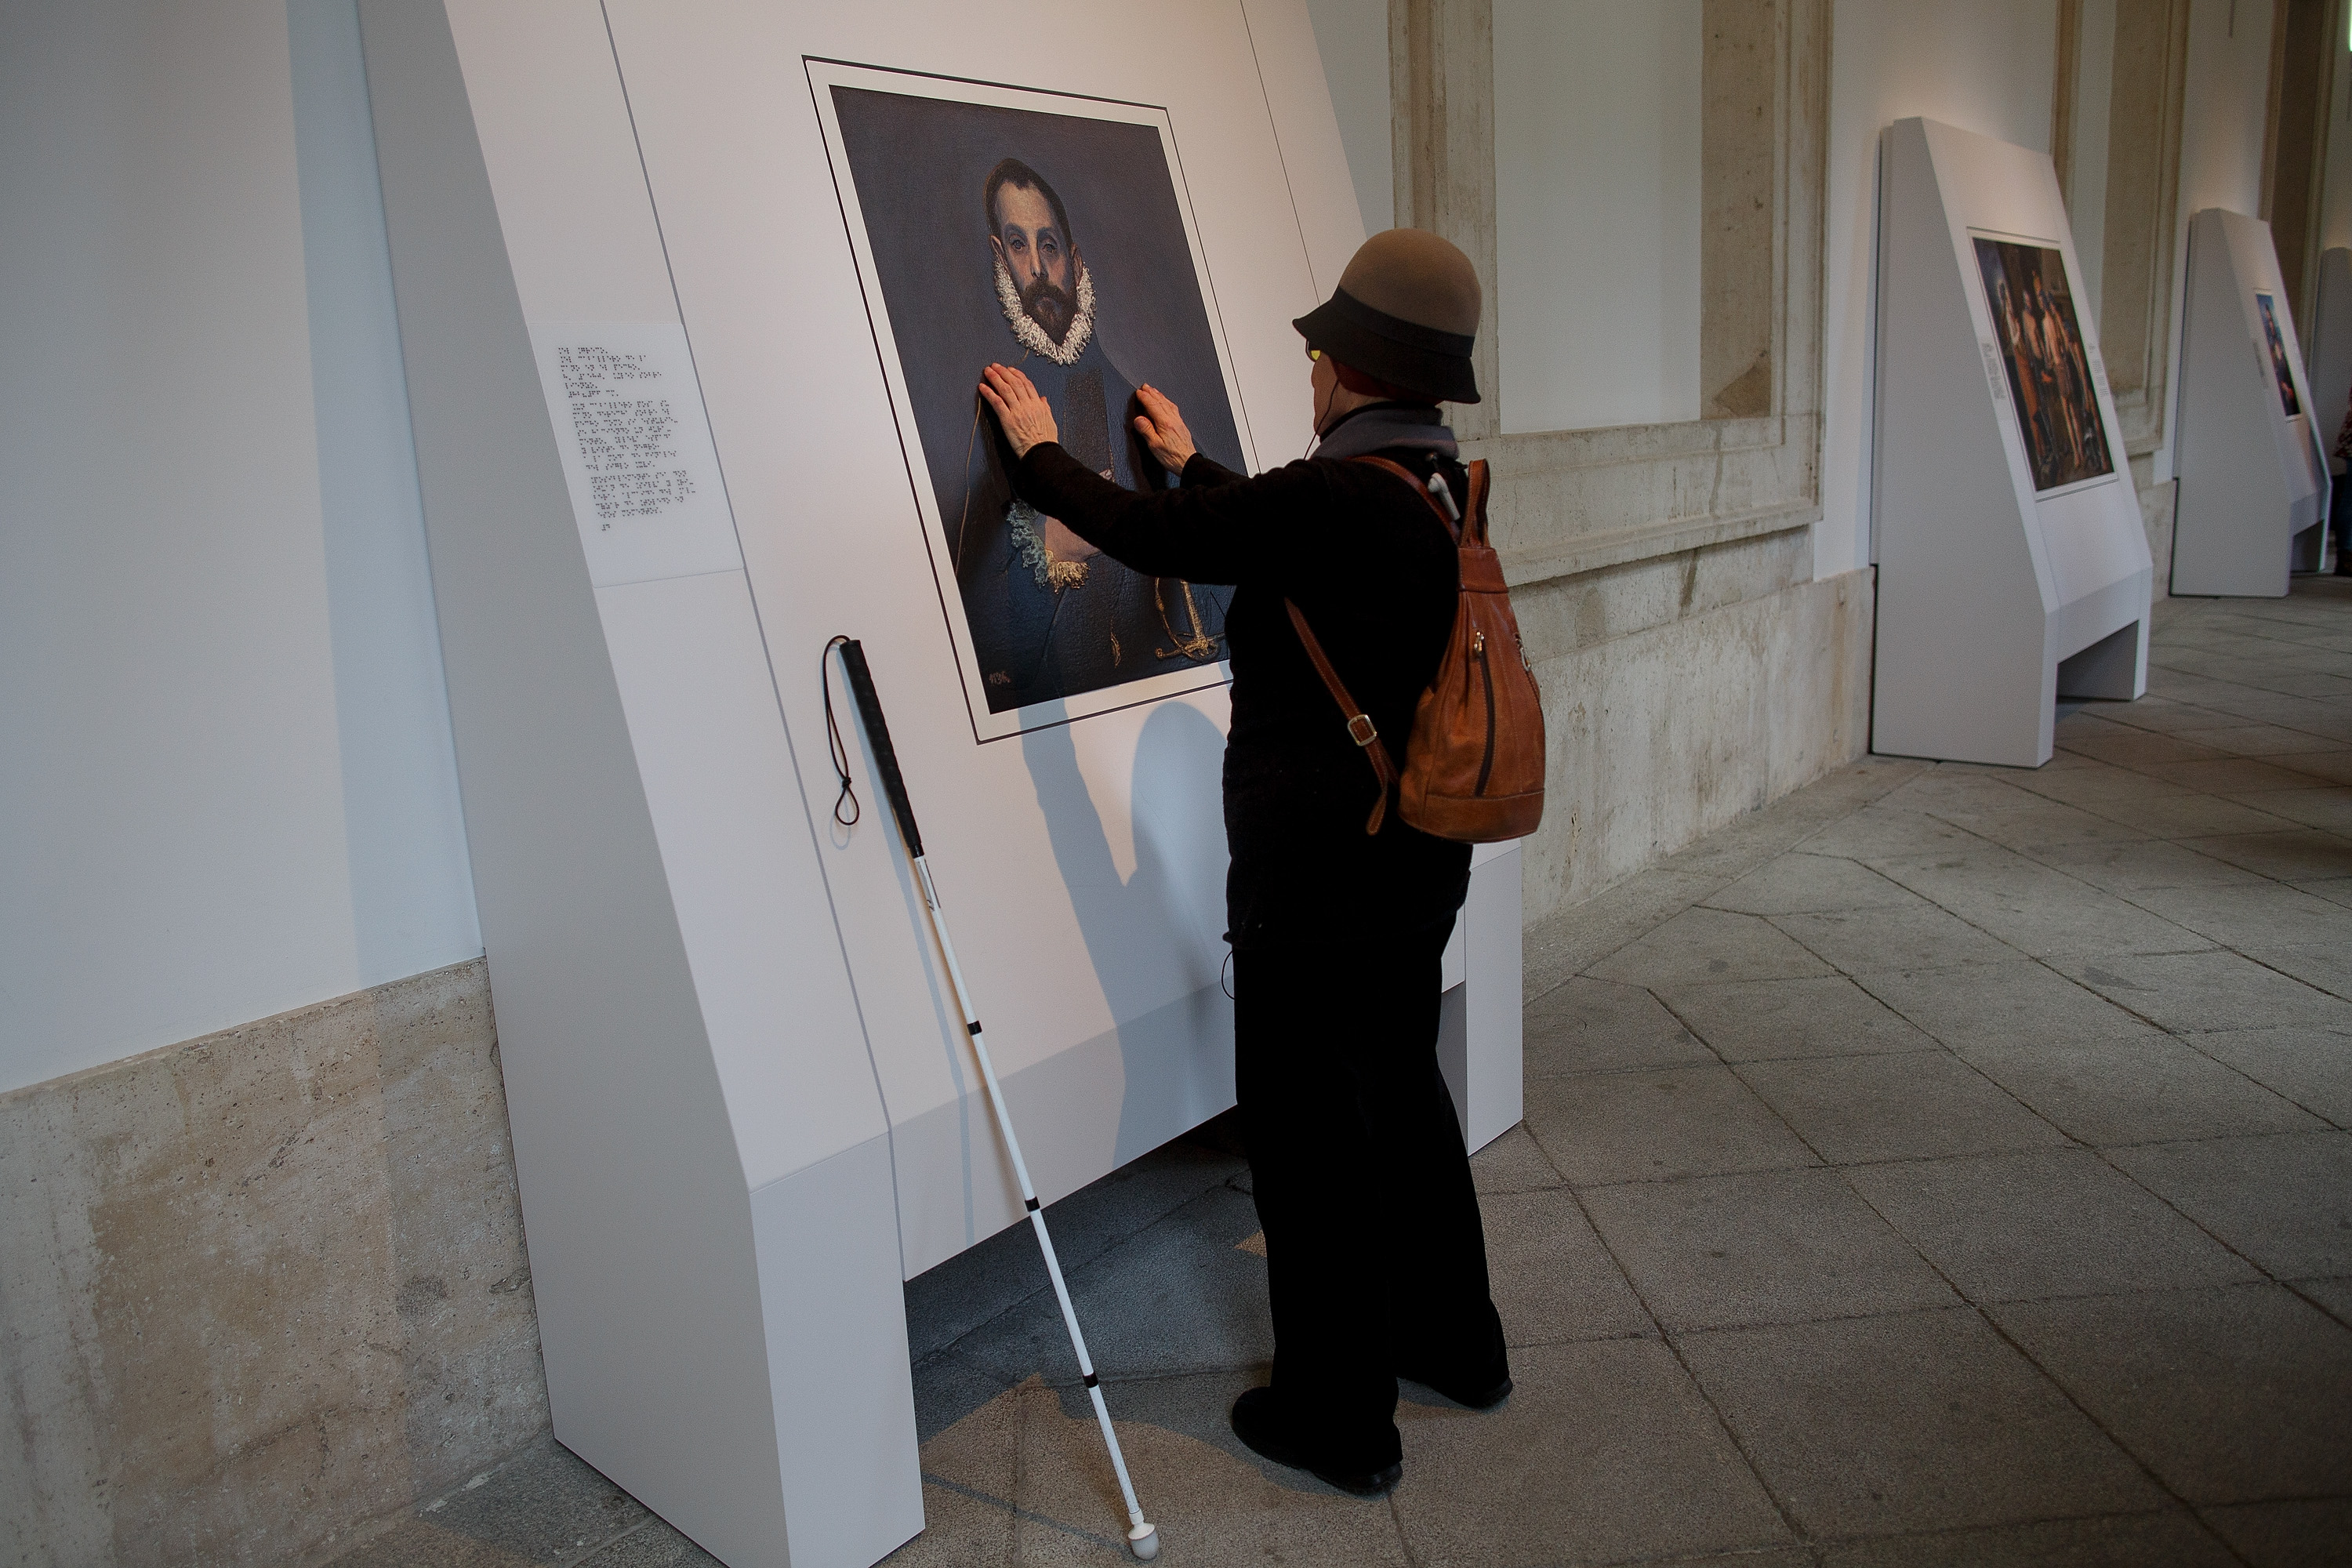 A blind person feels with her hands a copy of 'The gentleman with his hand on his chest' of El Greco at The Prado Museum on Feb. 10, 2015 in Madrid.